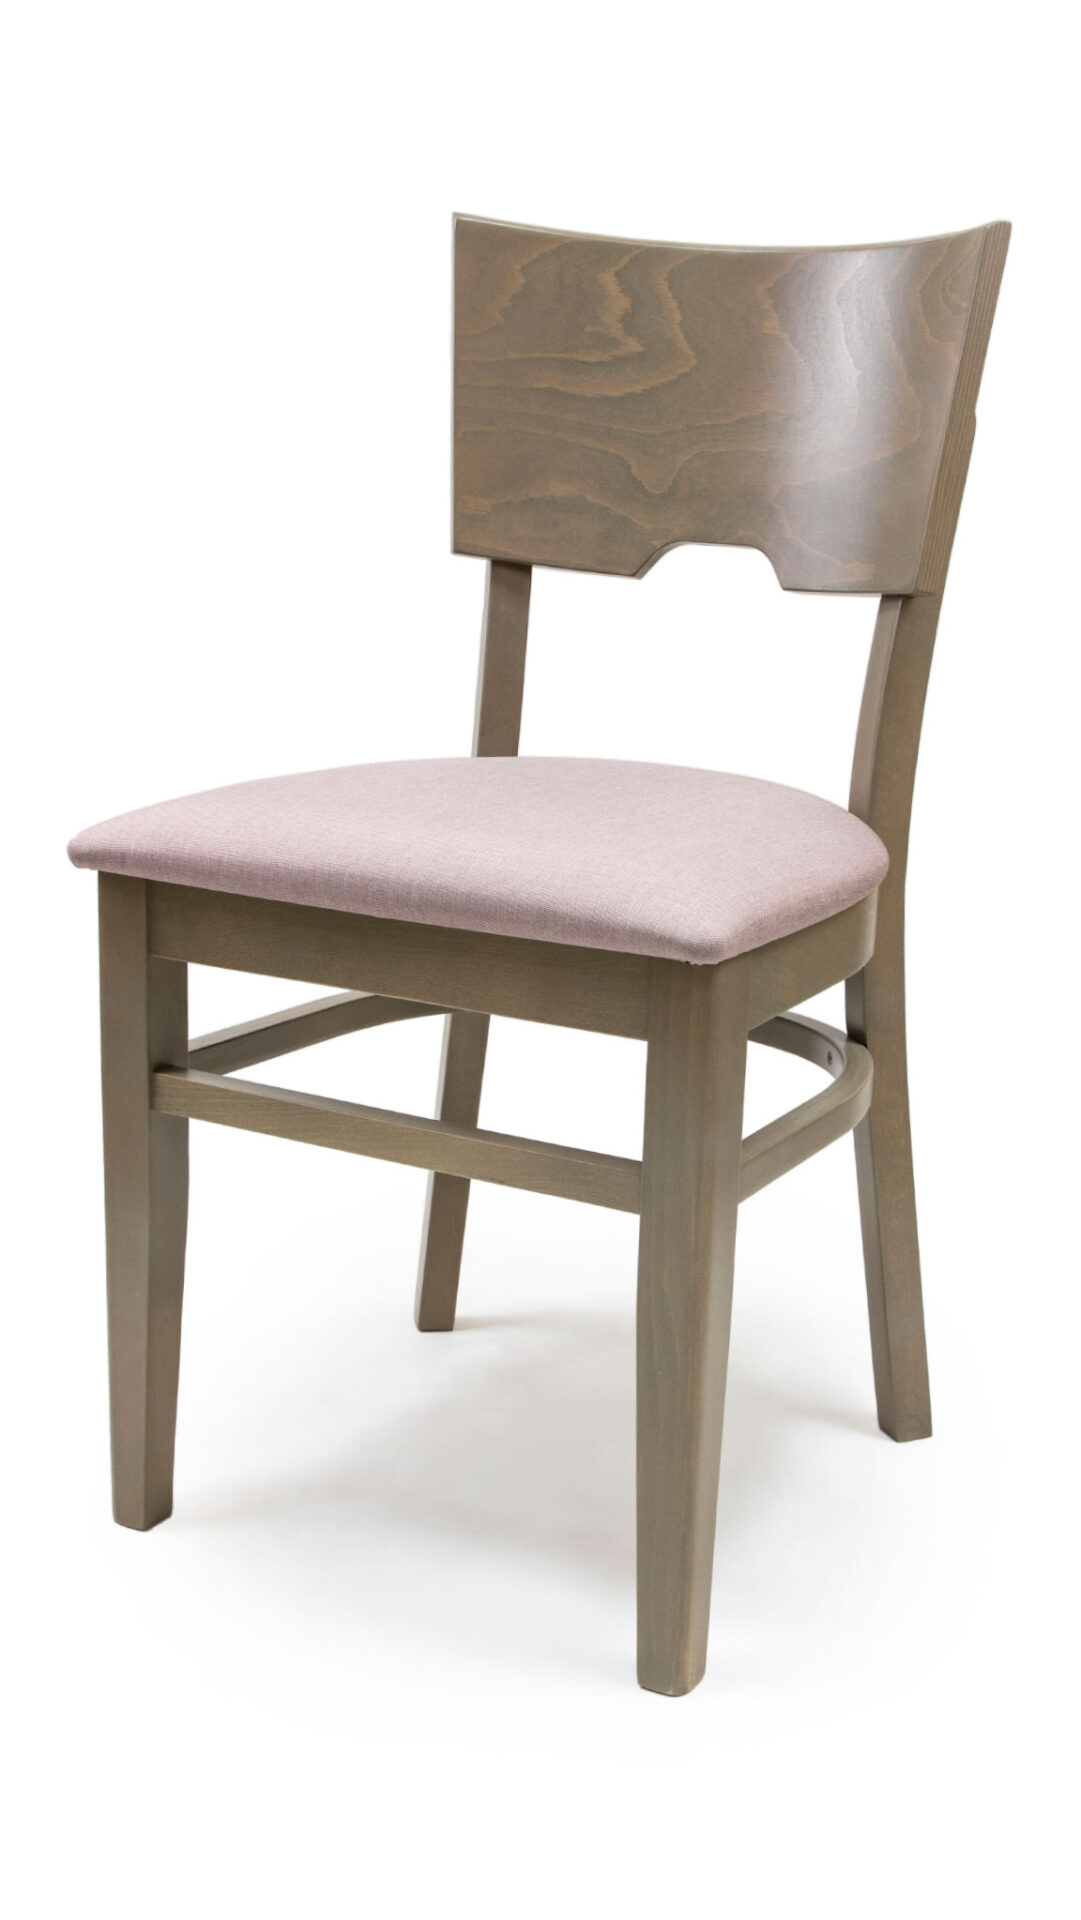 Solid Wood Chair made of Beech - 1333S